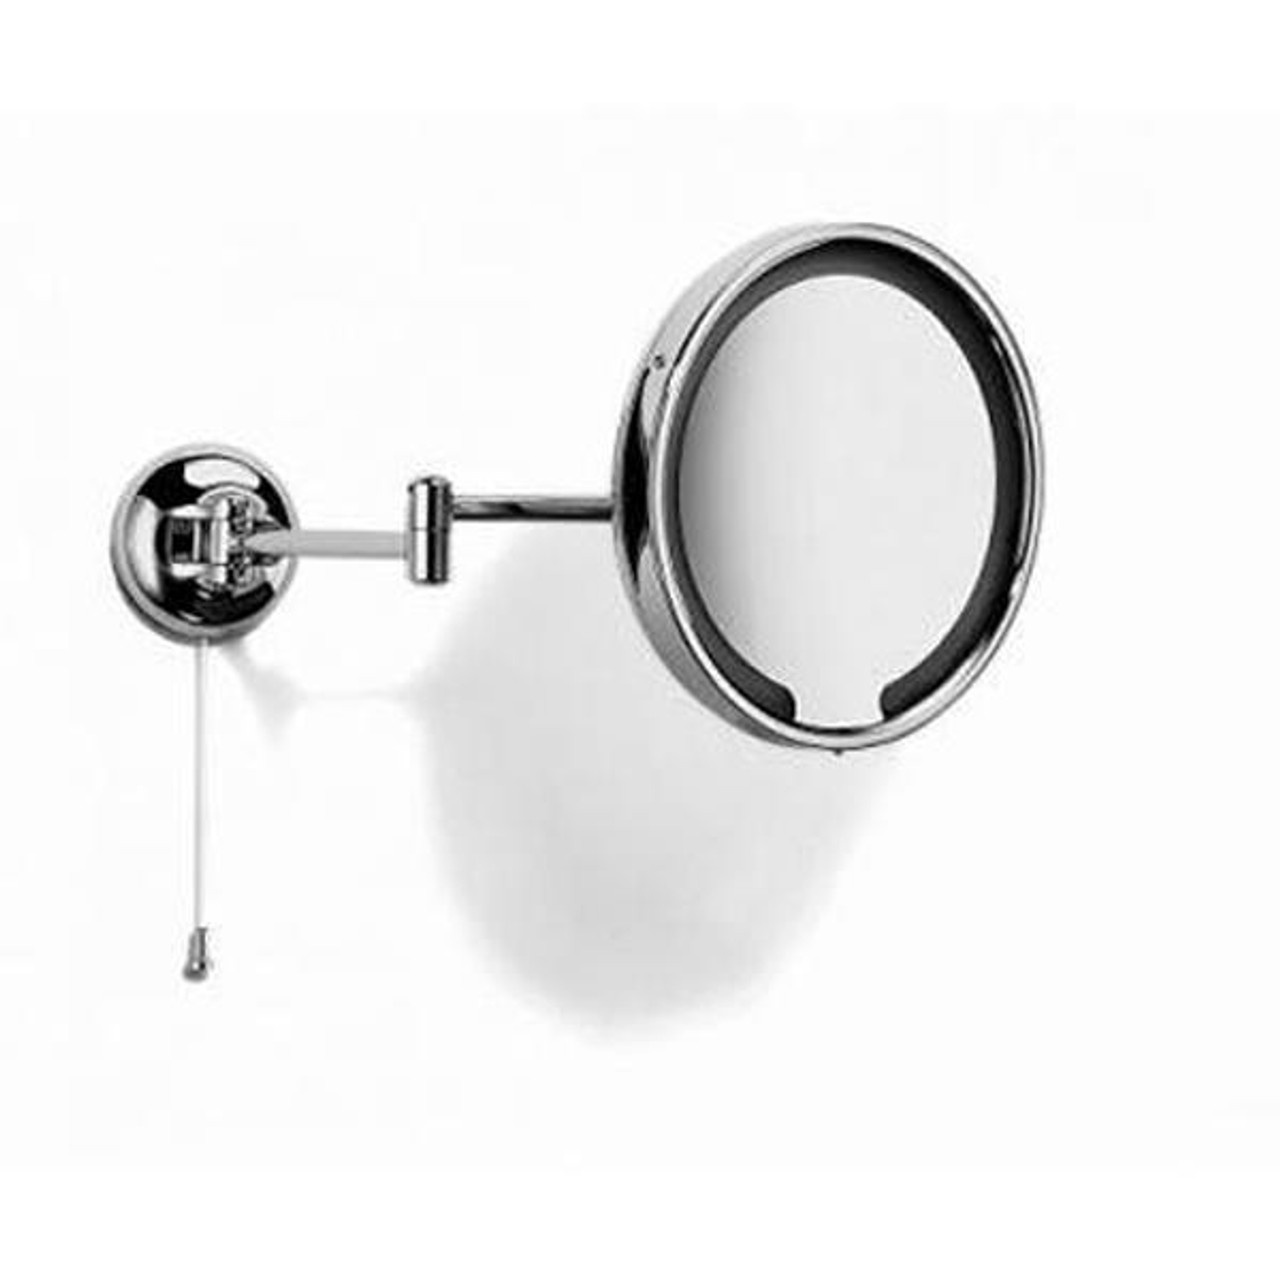 Chrome Plated Samuel Heath Novis Double Arm LED Illuminated Magnifying Pivotal Mirror N510-3